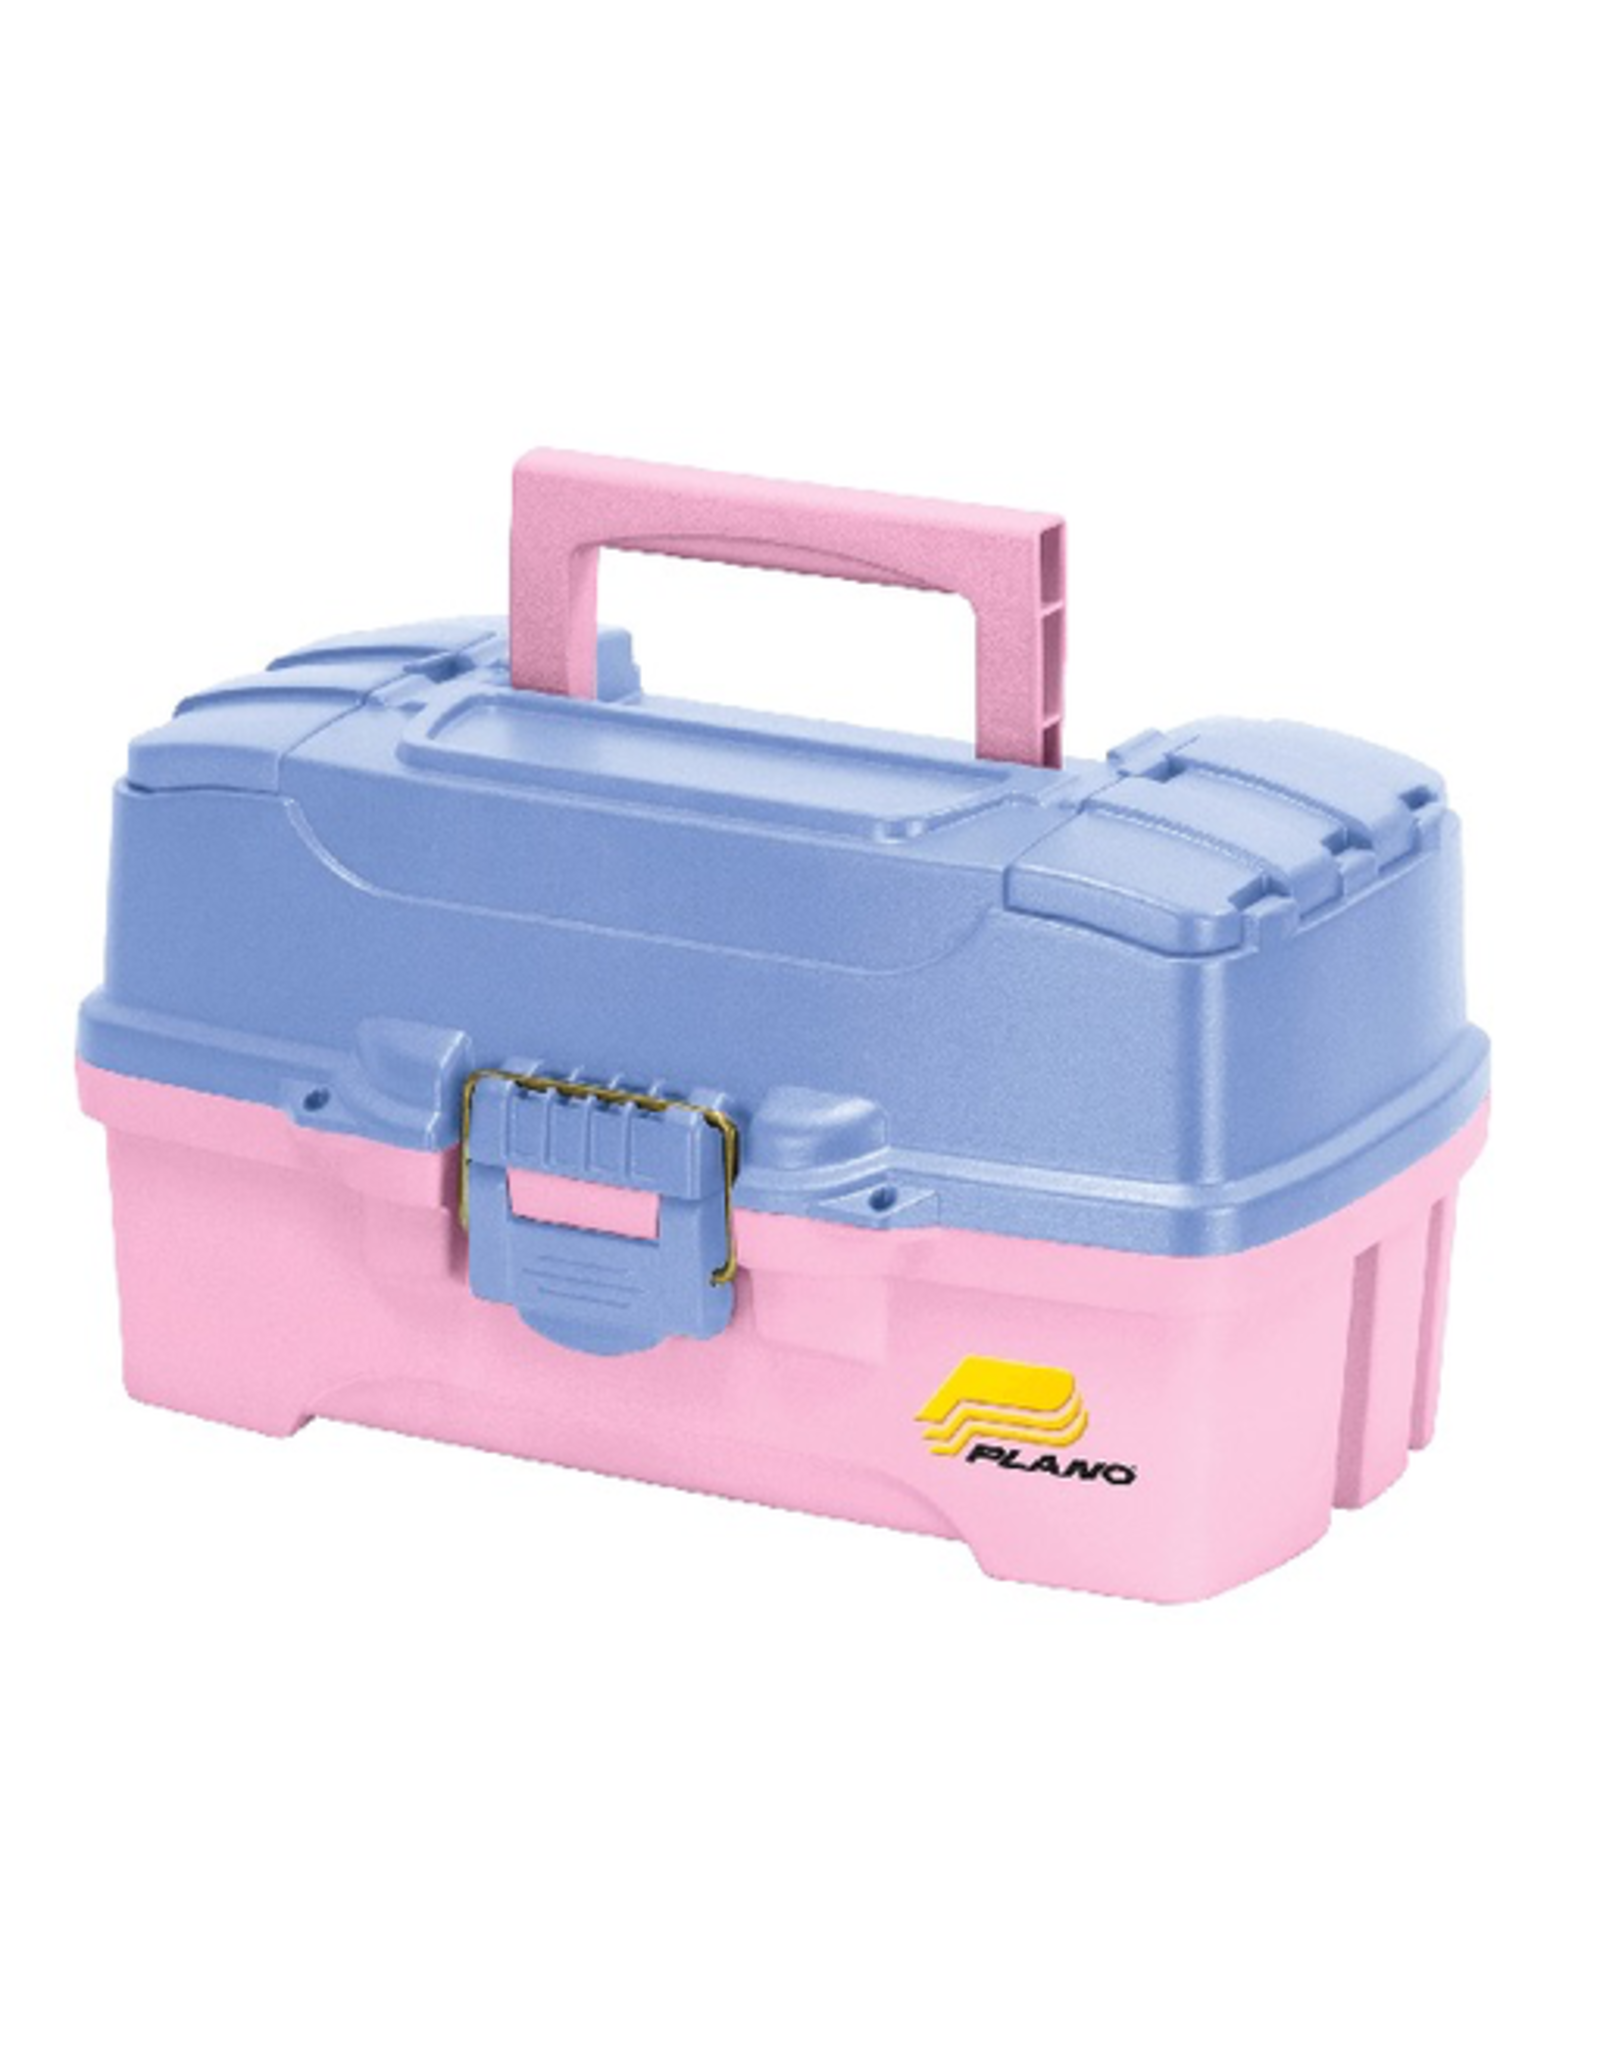 Plano Plano 2 Tray Pink / Periwinkle Tackle Box 14.25 in L X 8.5 in W X 7.75 in H